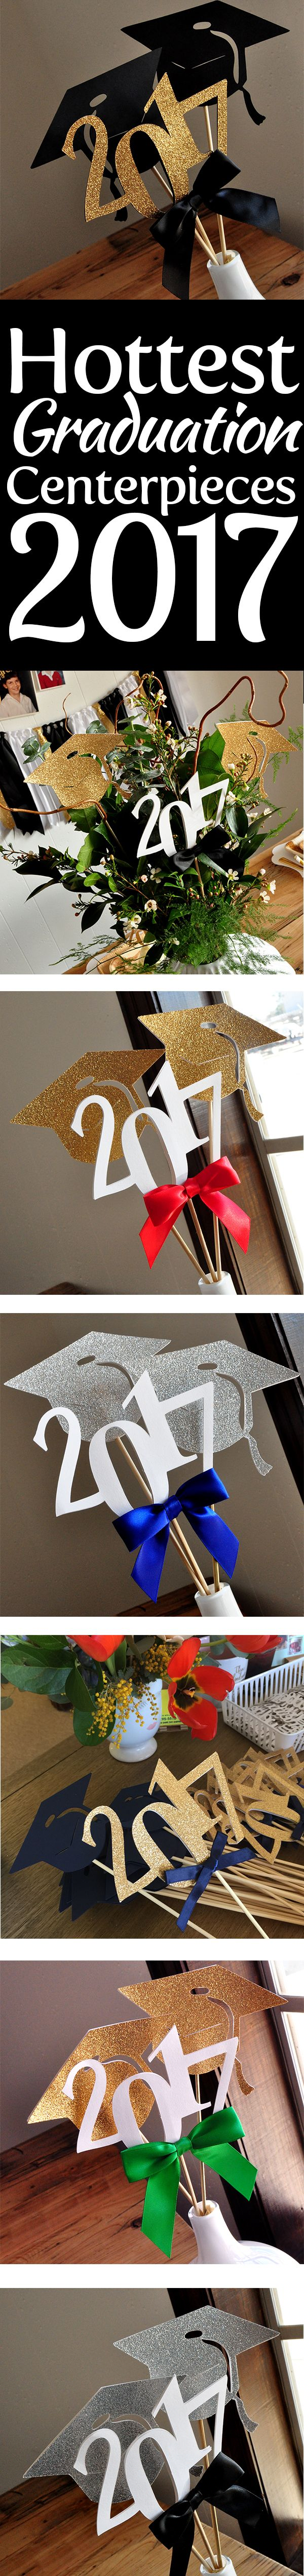 Super cute graduation centerpieces! I love how these can match my child's school colors! These would be perfect for my son and daughter!